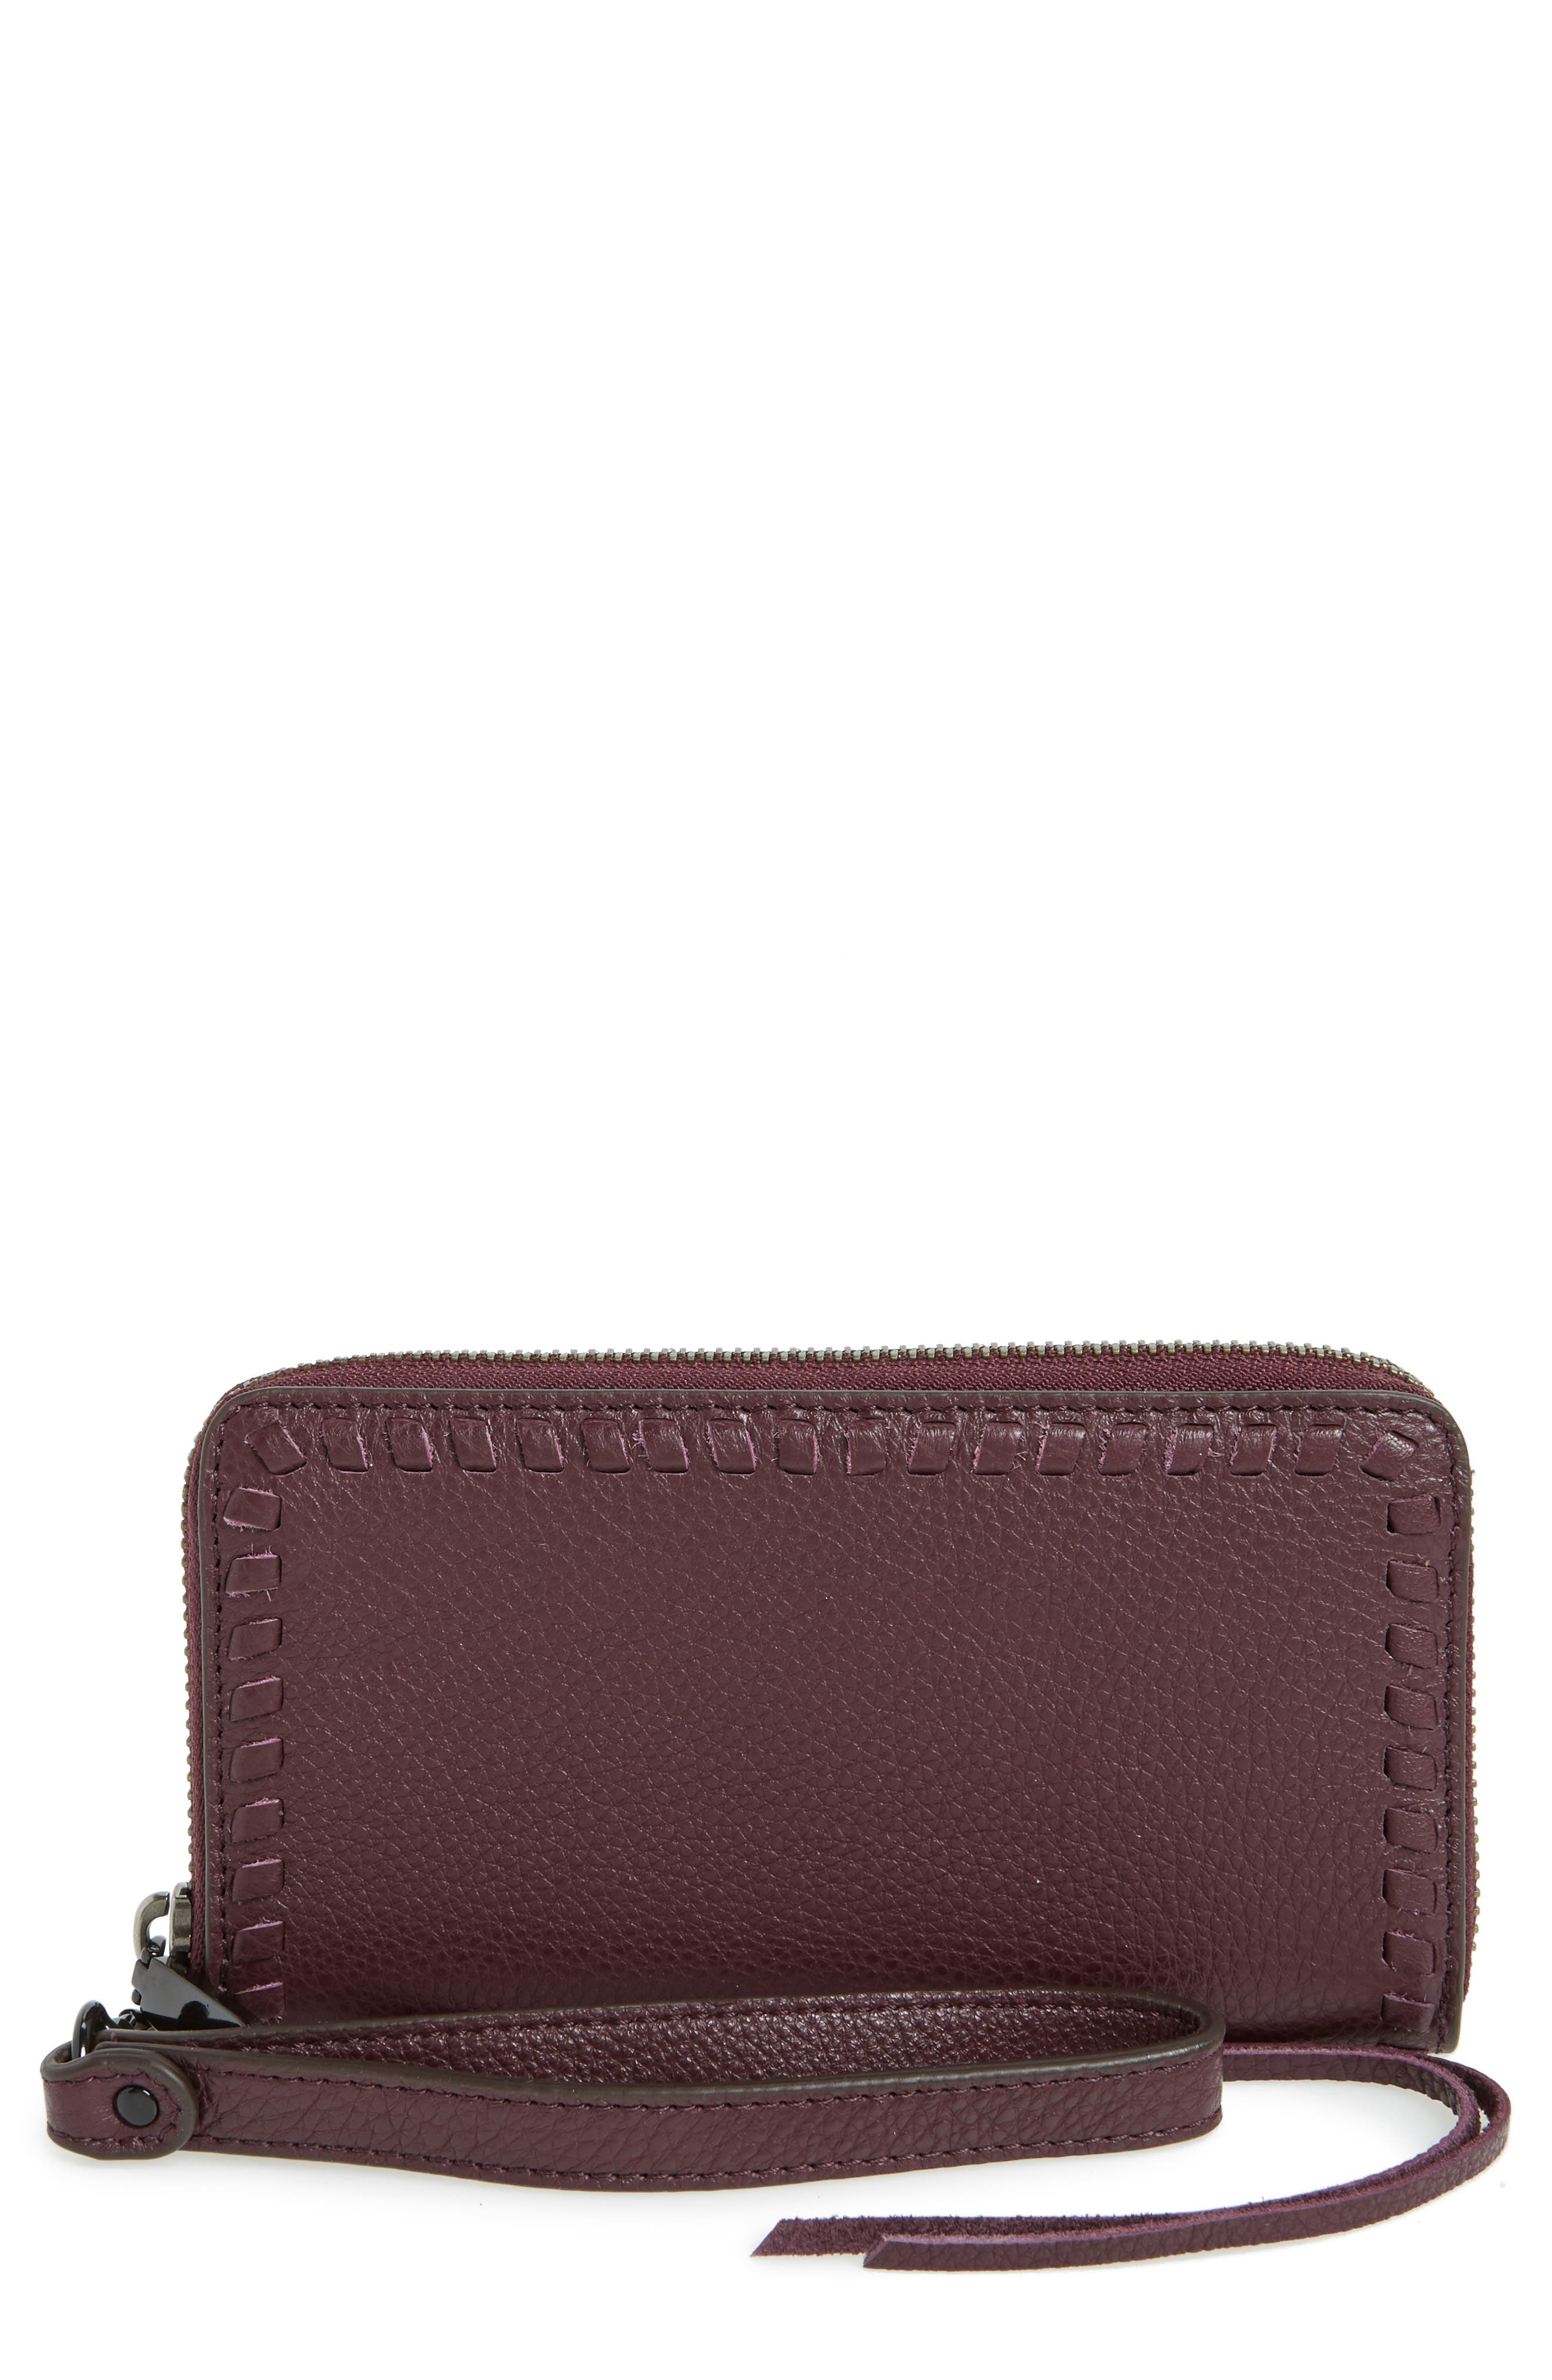 Vanity Leather Smartphone Wristlet,                             Main thumbnail 1, color,                             Dark Cherry